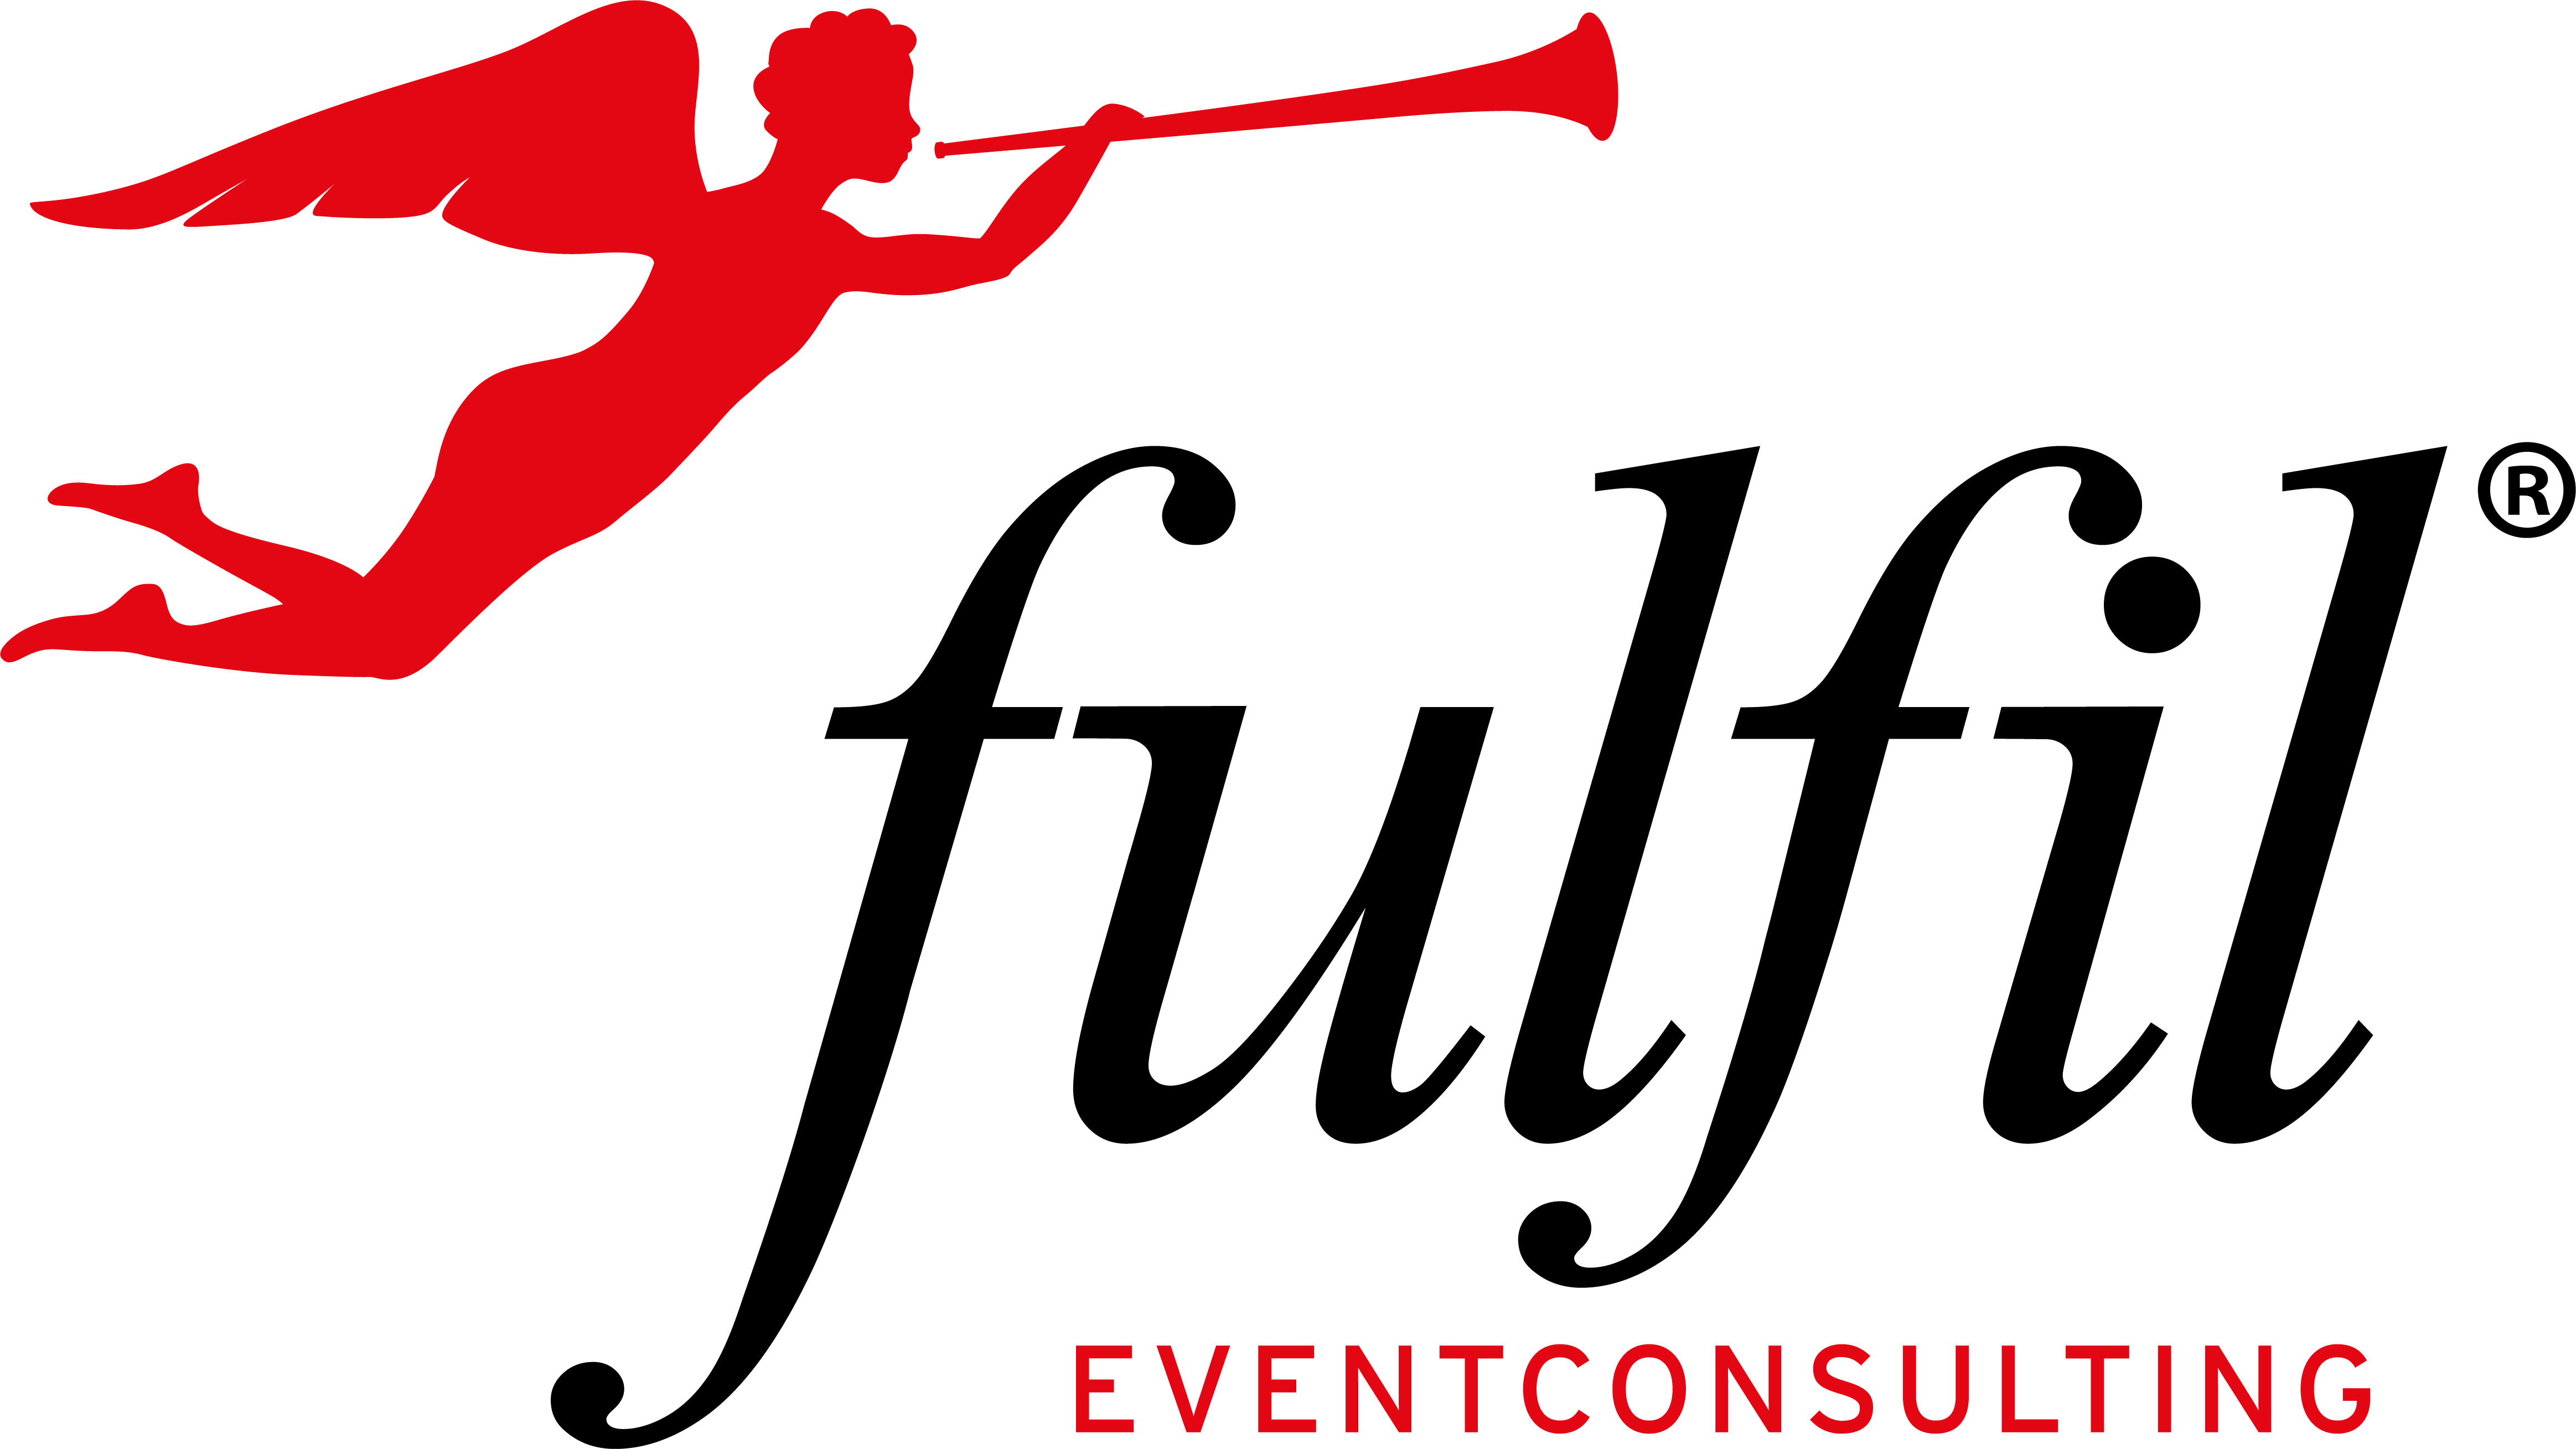 fulfil eventconsulting